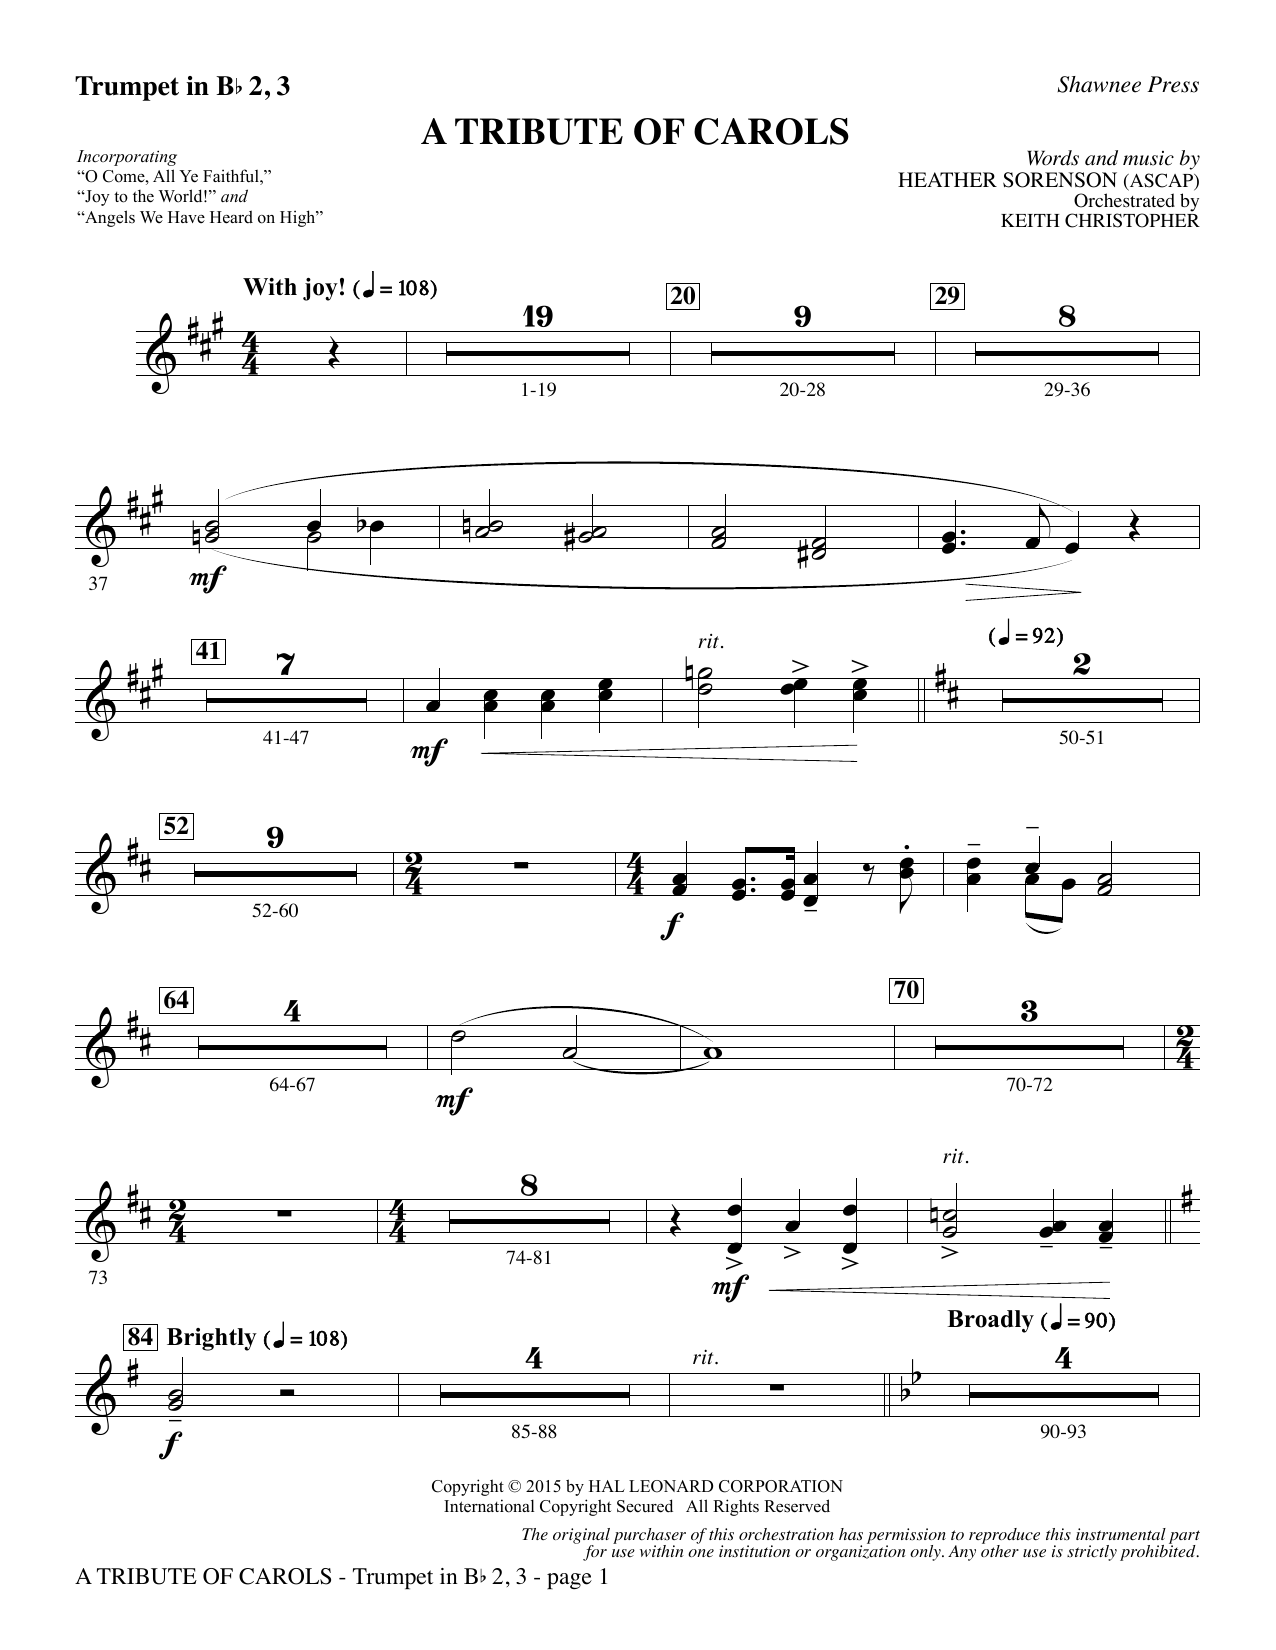 Download Heather Sorenson 'A Tribute of Carols - Bb Trumpet 2,3' Digital Sheet Music Notes & Chords and start playing in minutes